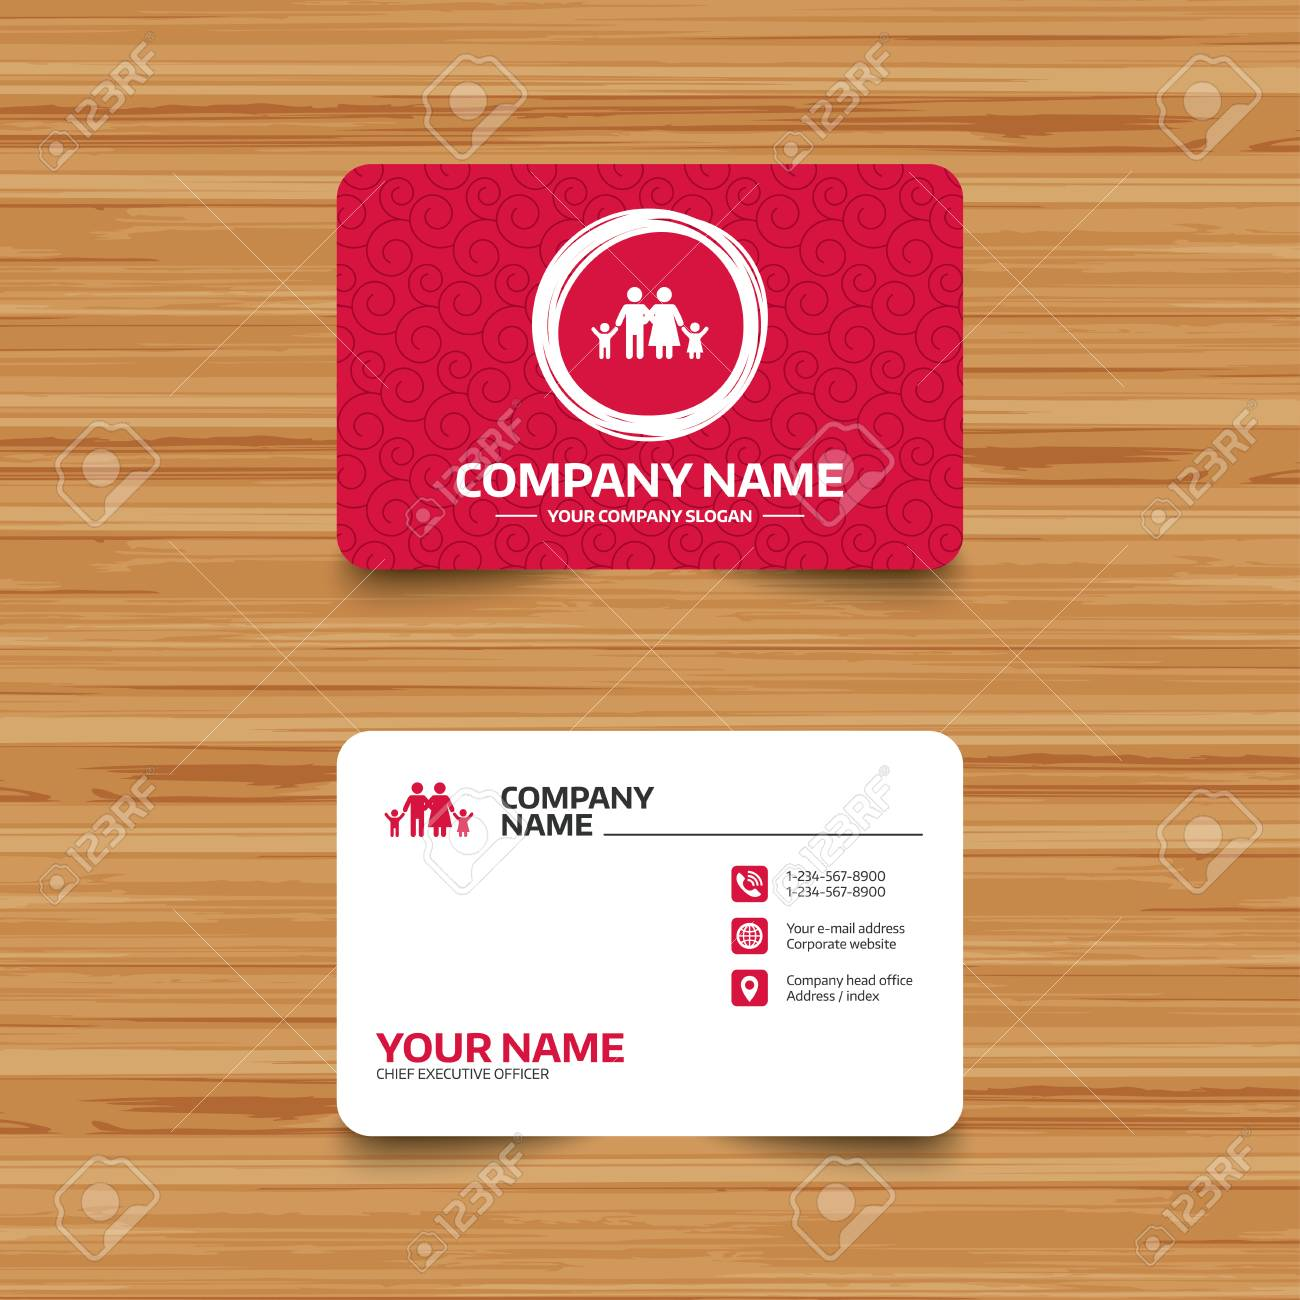 insurance business card templates free  Business Card Template With Texture. Family Icon. Parents With ...